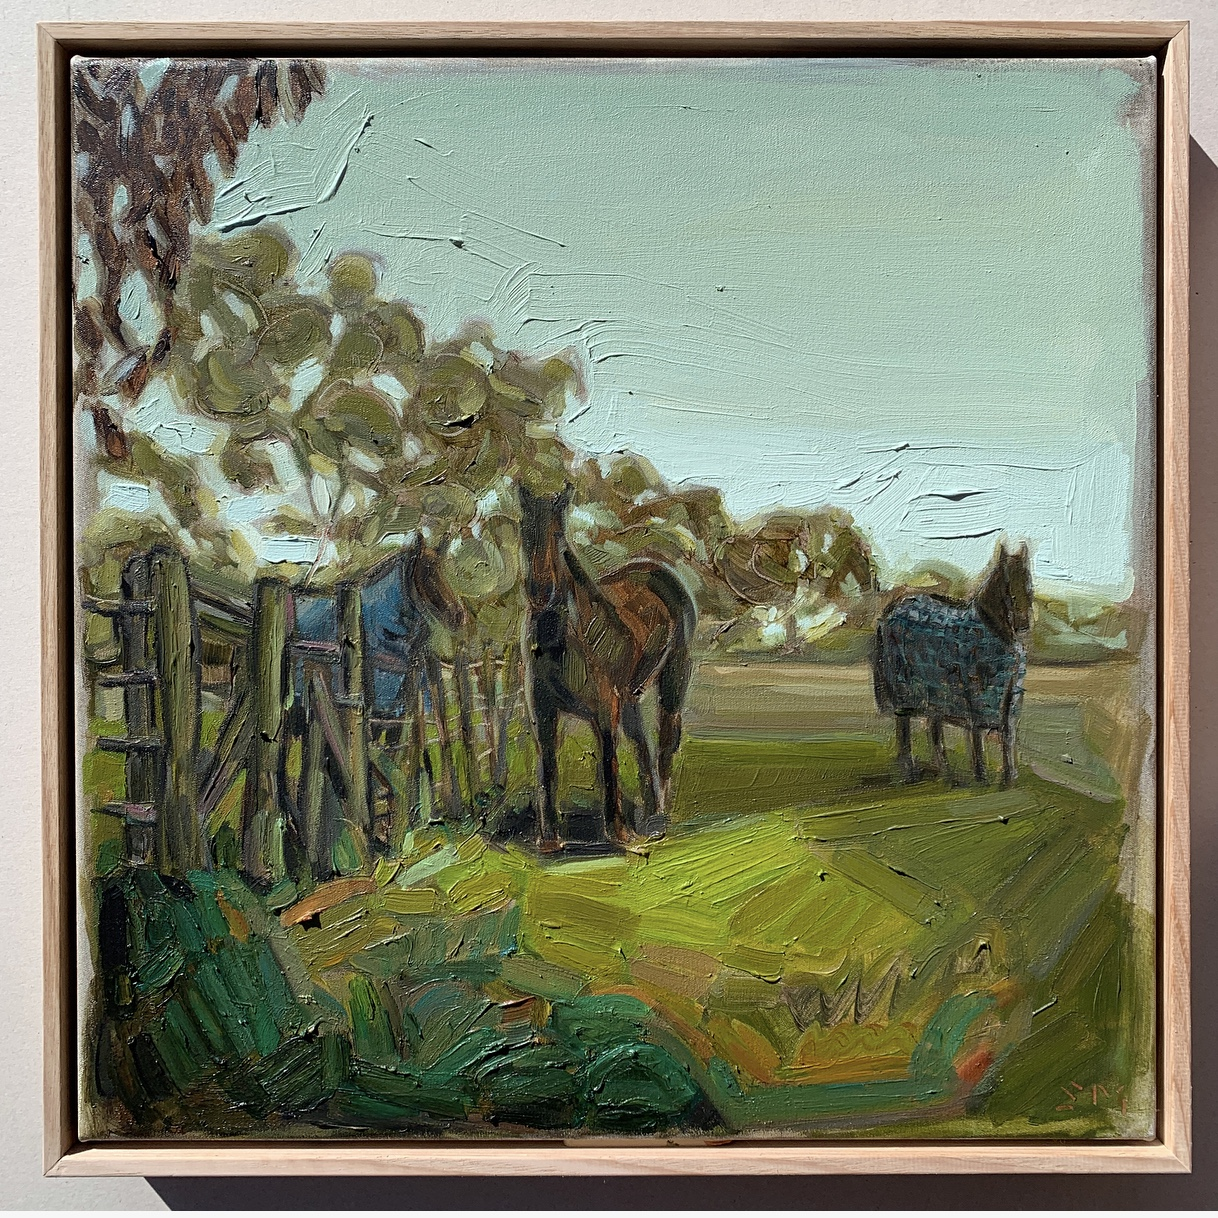 sam michelle 'country gate' 48x48cm 2019